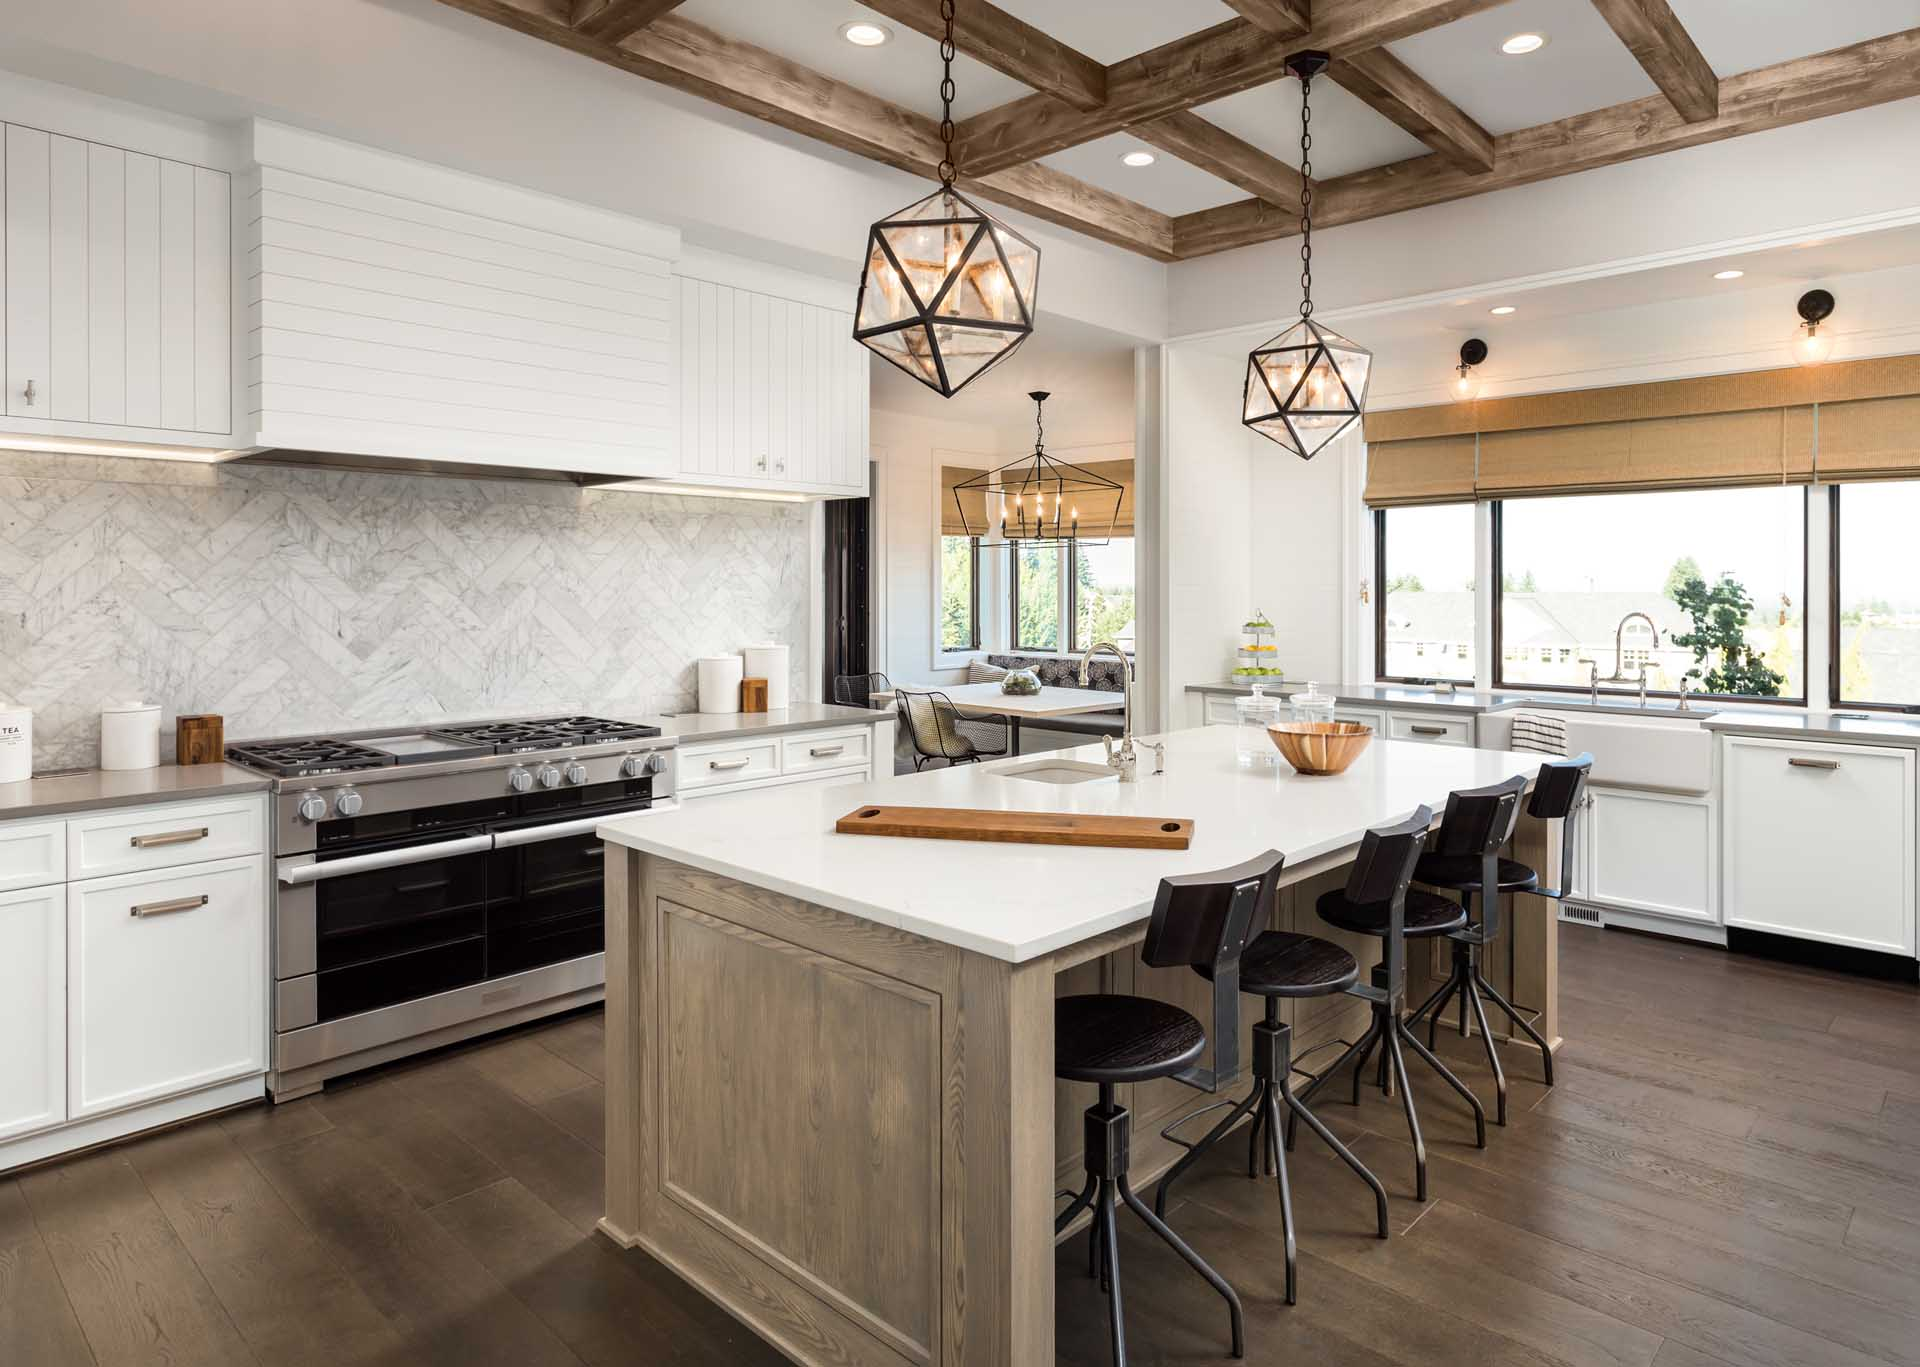 Kitchen Interior with Island, Sink, Cabinets, and Hardwood Floors in New Luxury Home. Features Elegant Pendant Light Fixtures, and Farmhouse Sink next to Window; Shutterstock ID 639915670; PO: 25pack; Job: 20180906; Client: tt; Other: aa